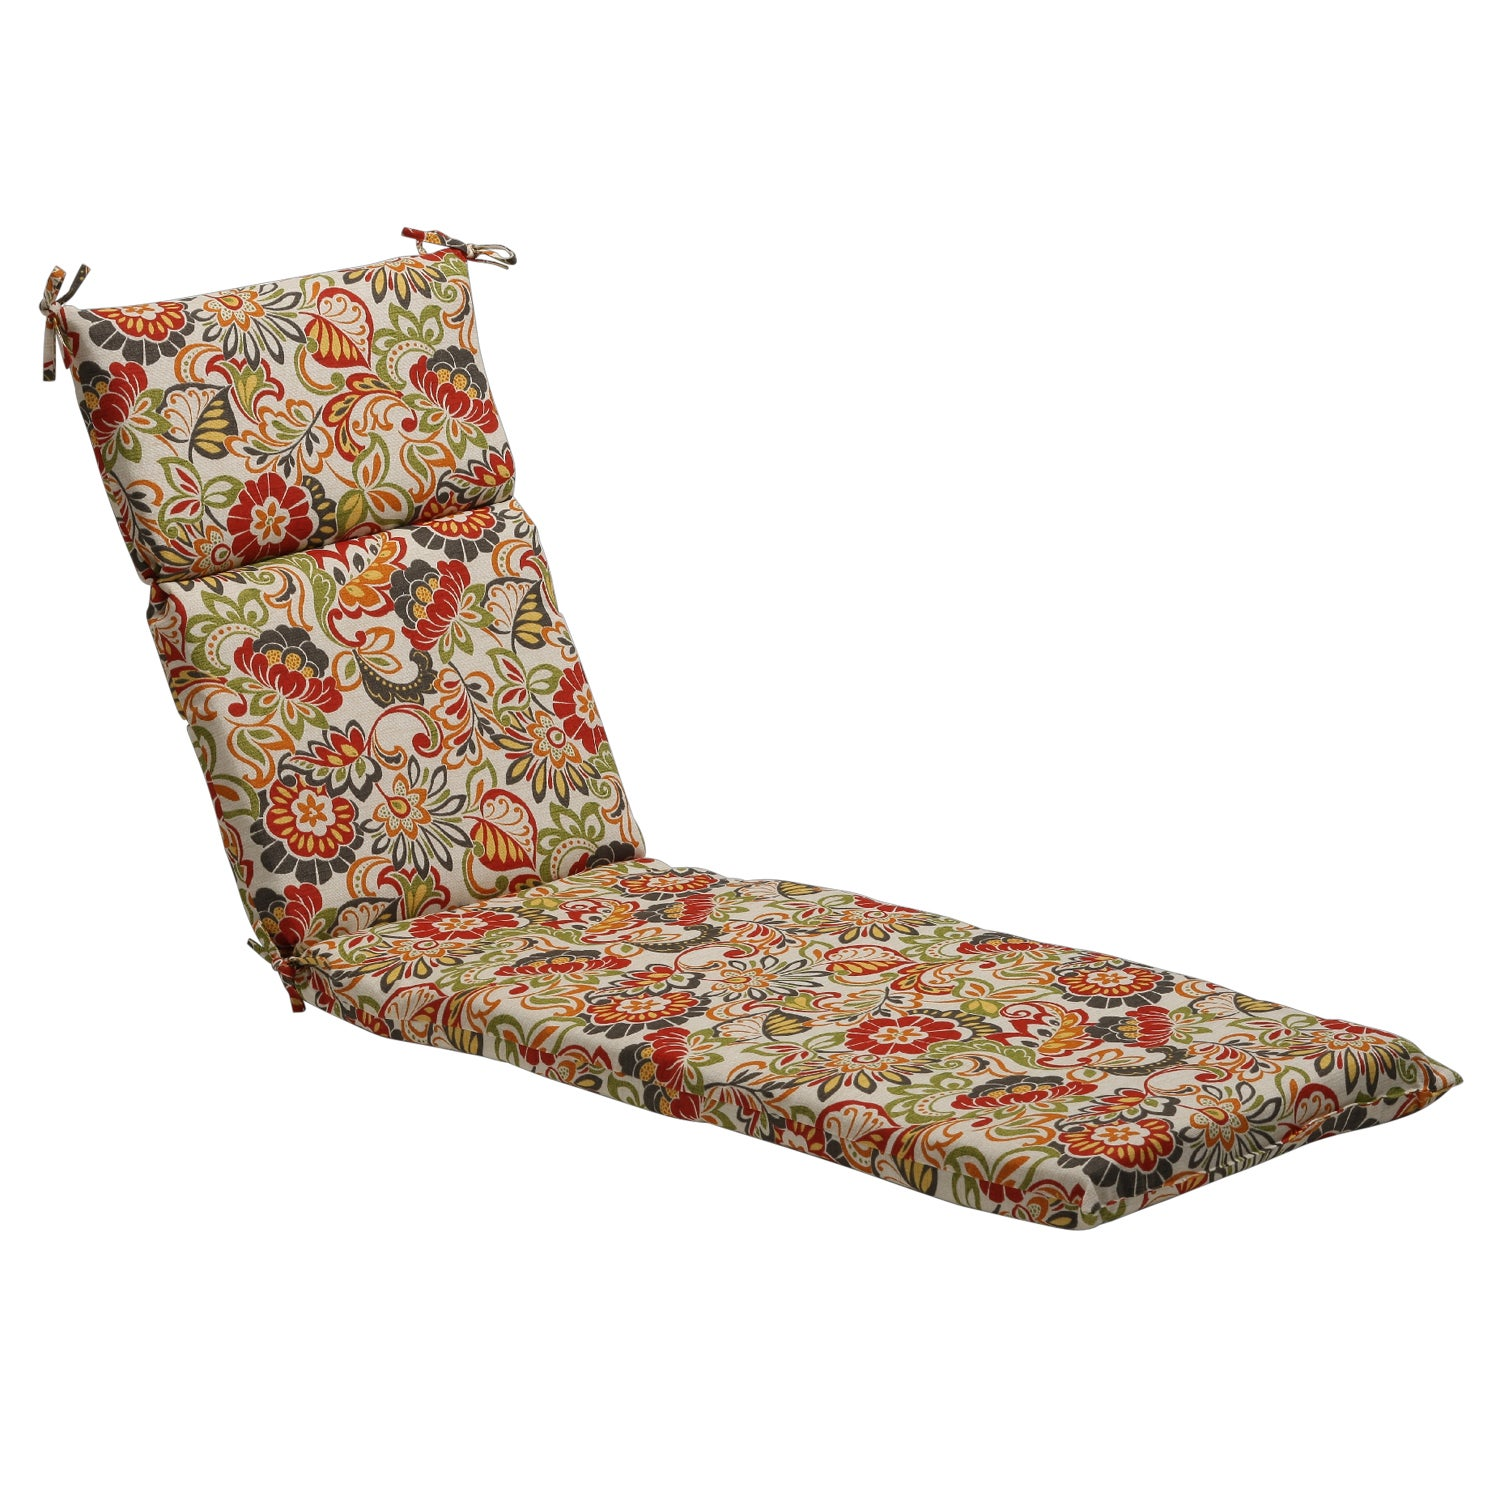 Pillow Perfect Multicolored Floral Outdoor Chaise Lounge Cushion at Sears.com